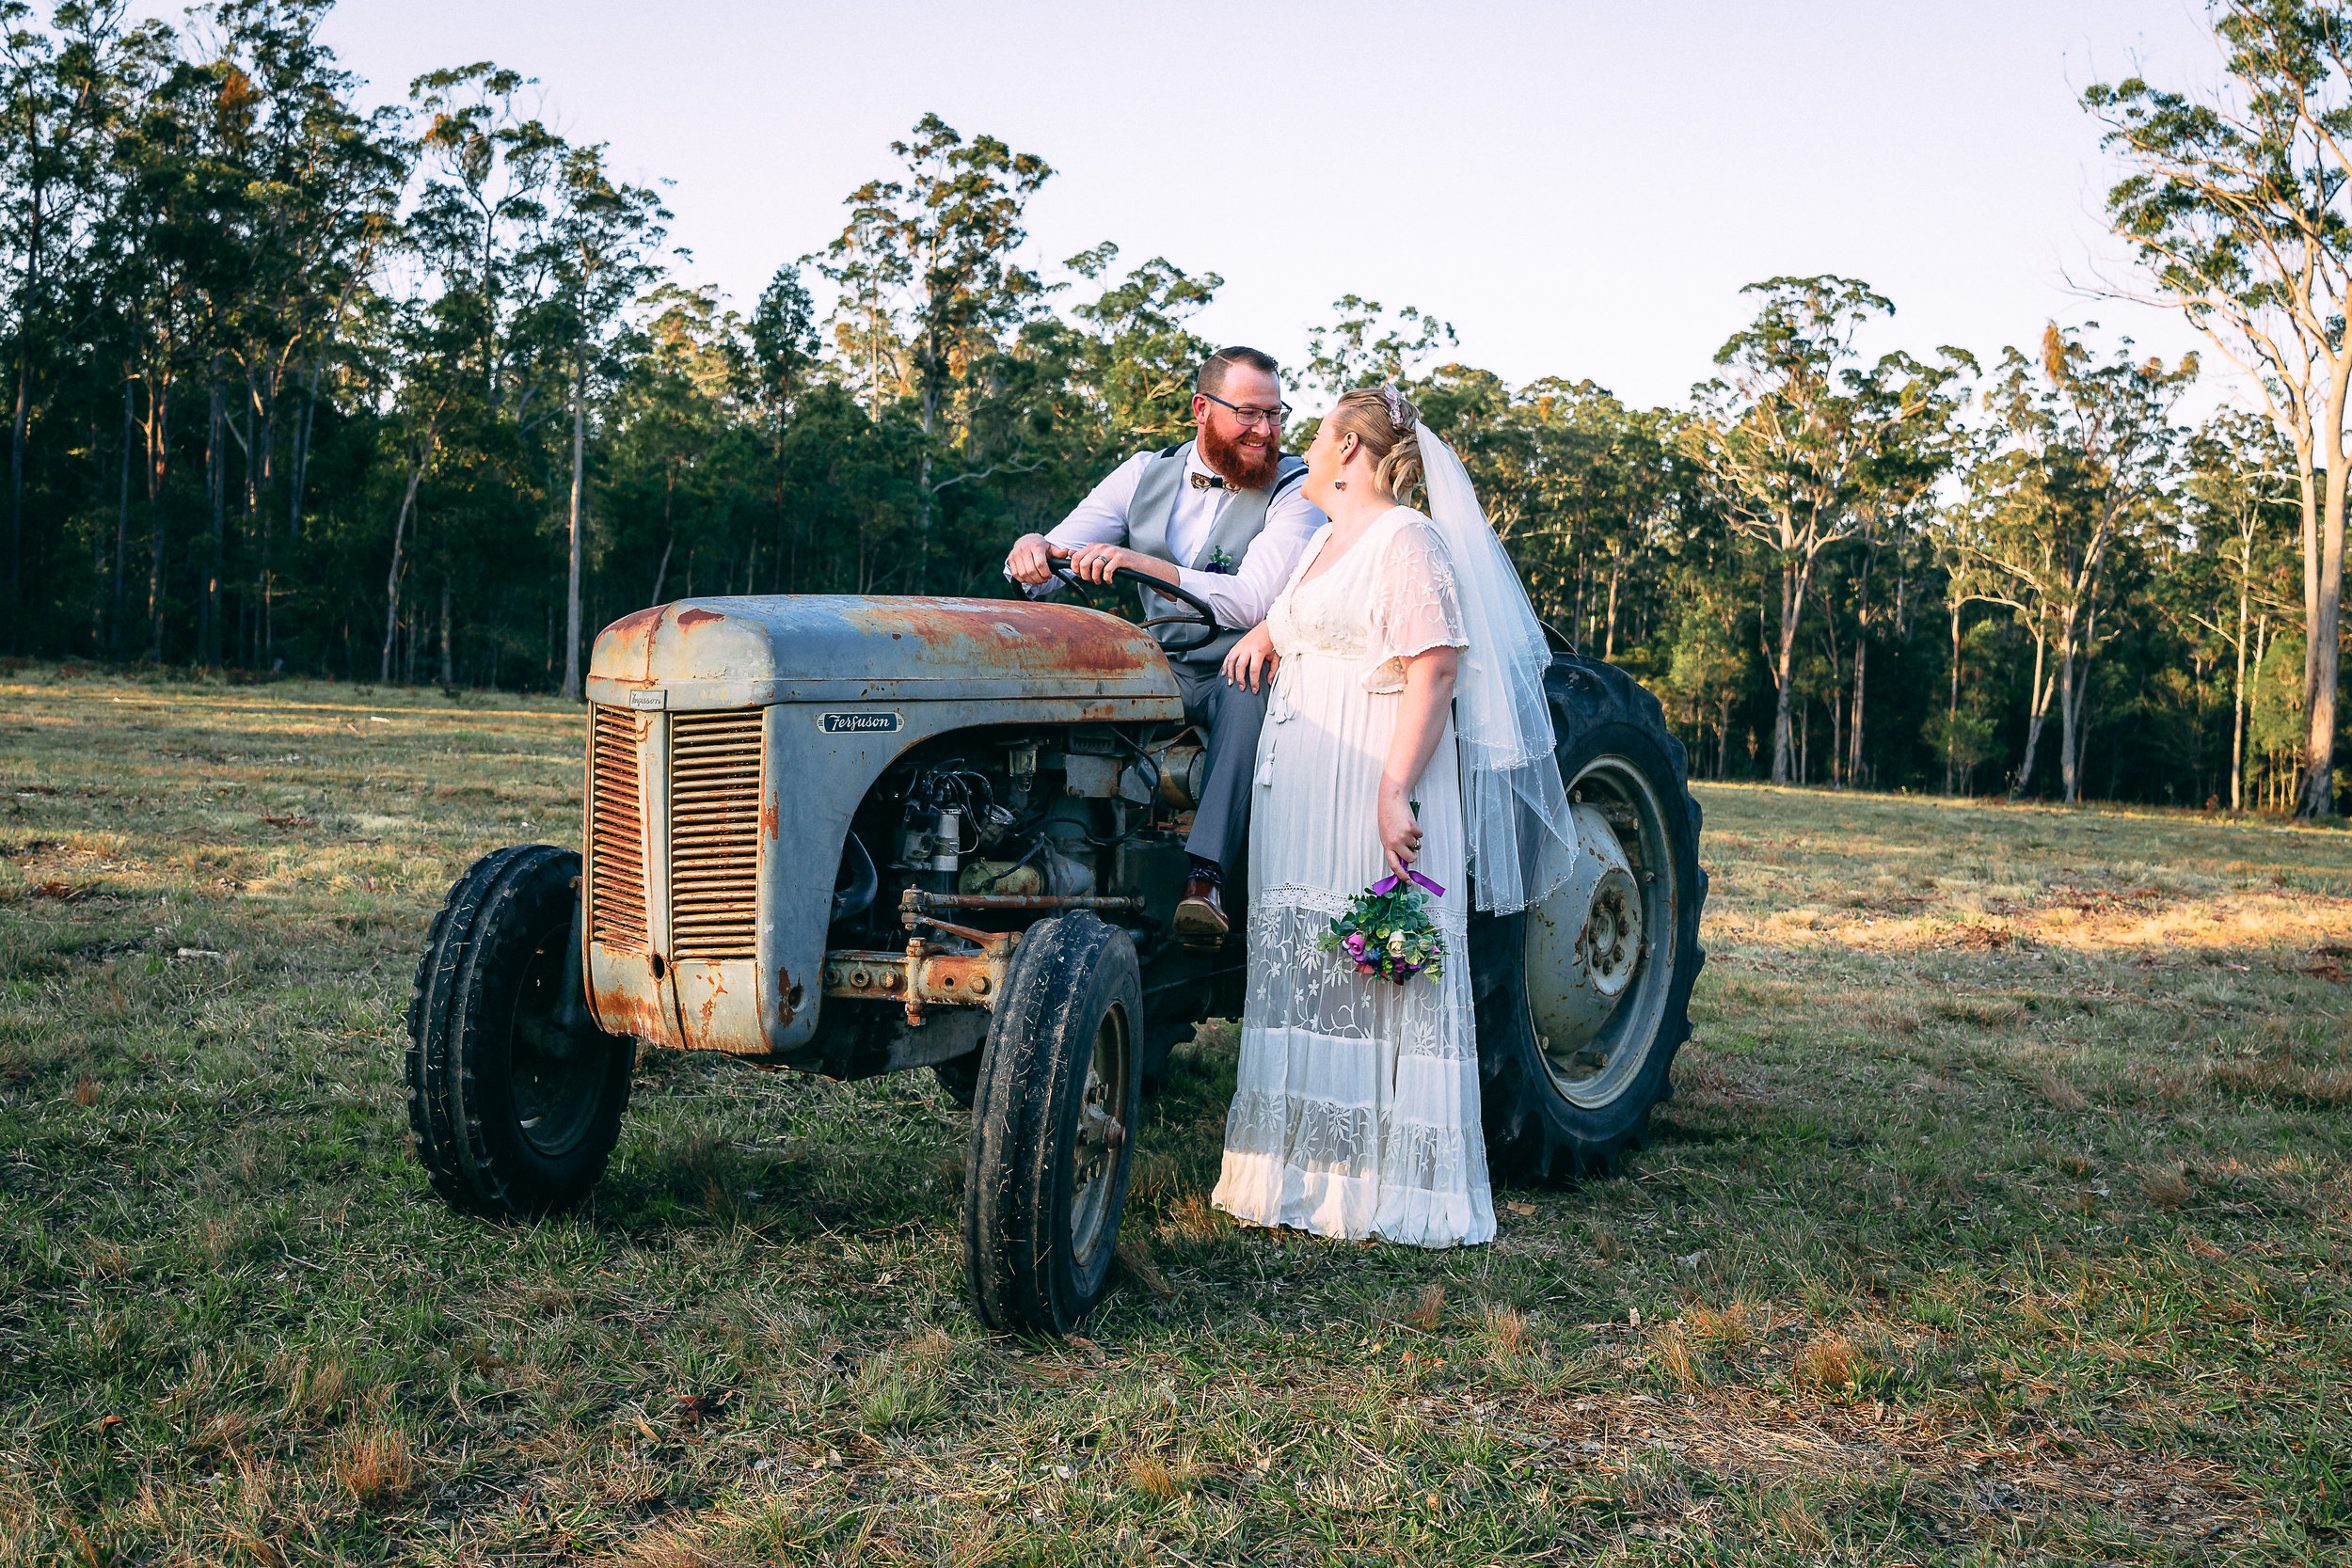 Glen & jacqui - Tullymorgan, NSW Australia